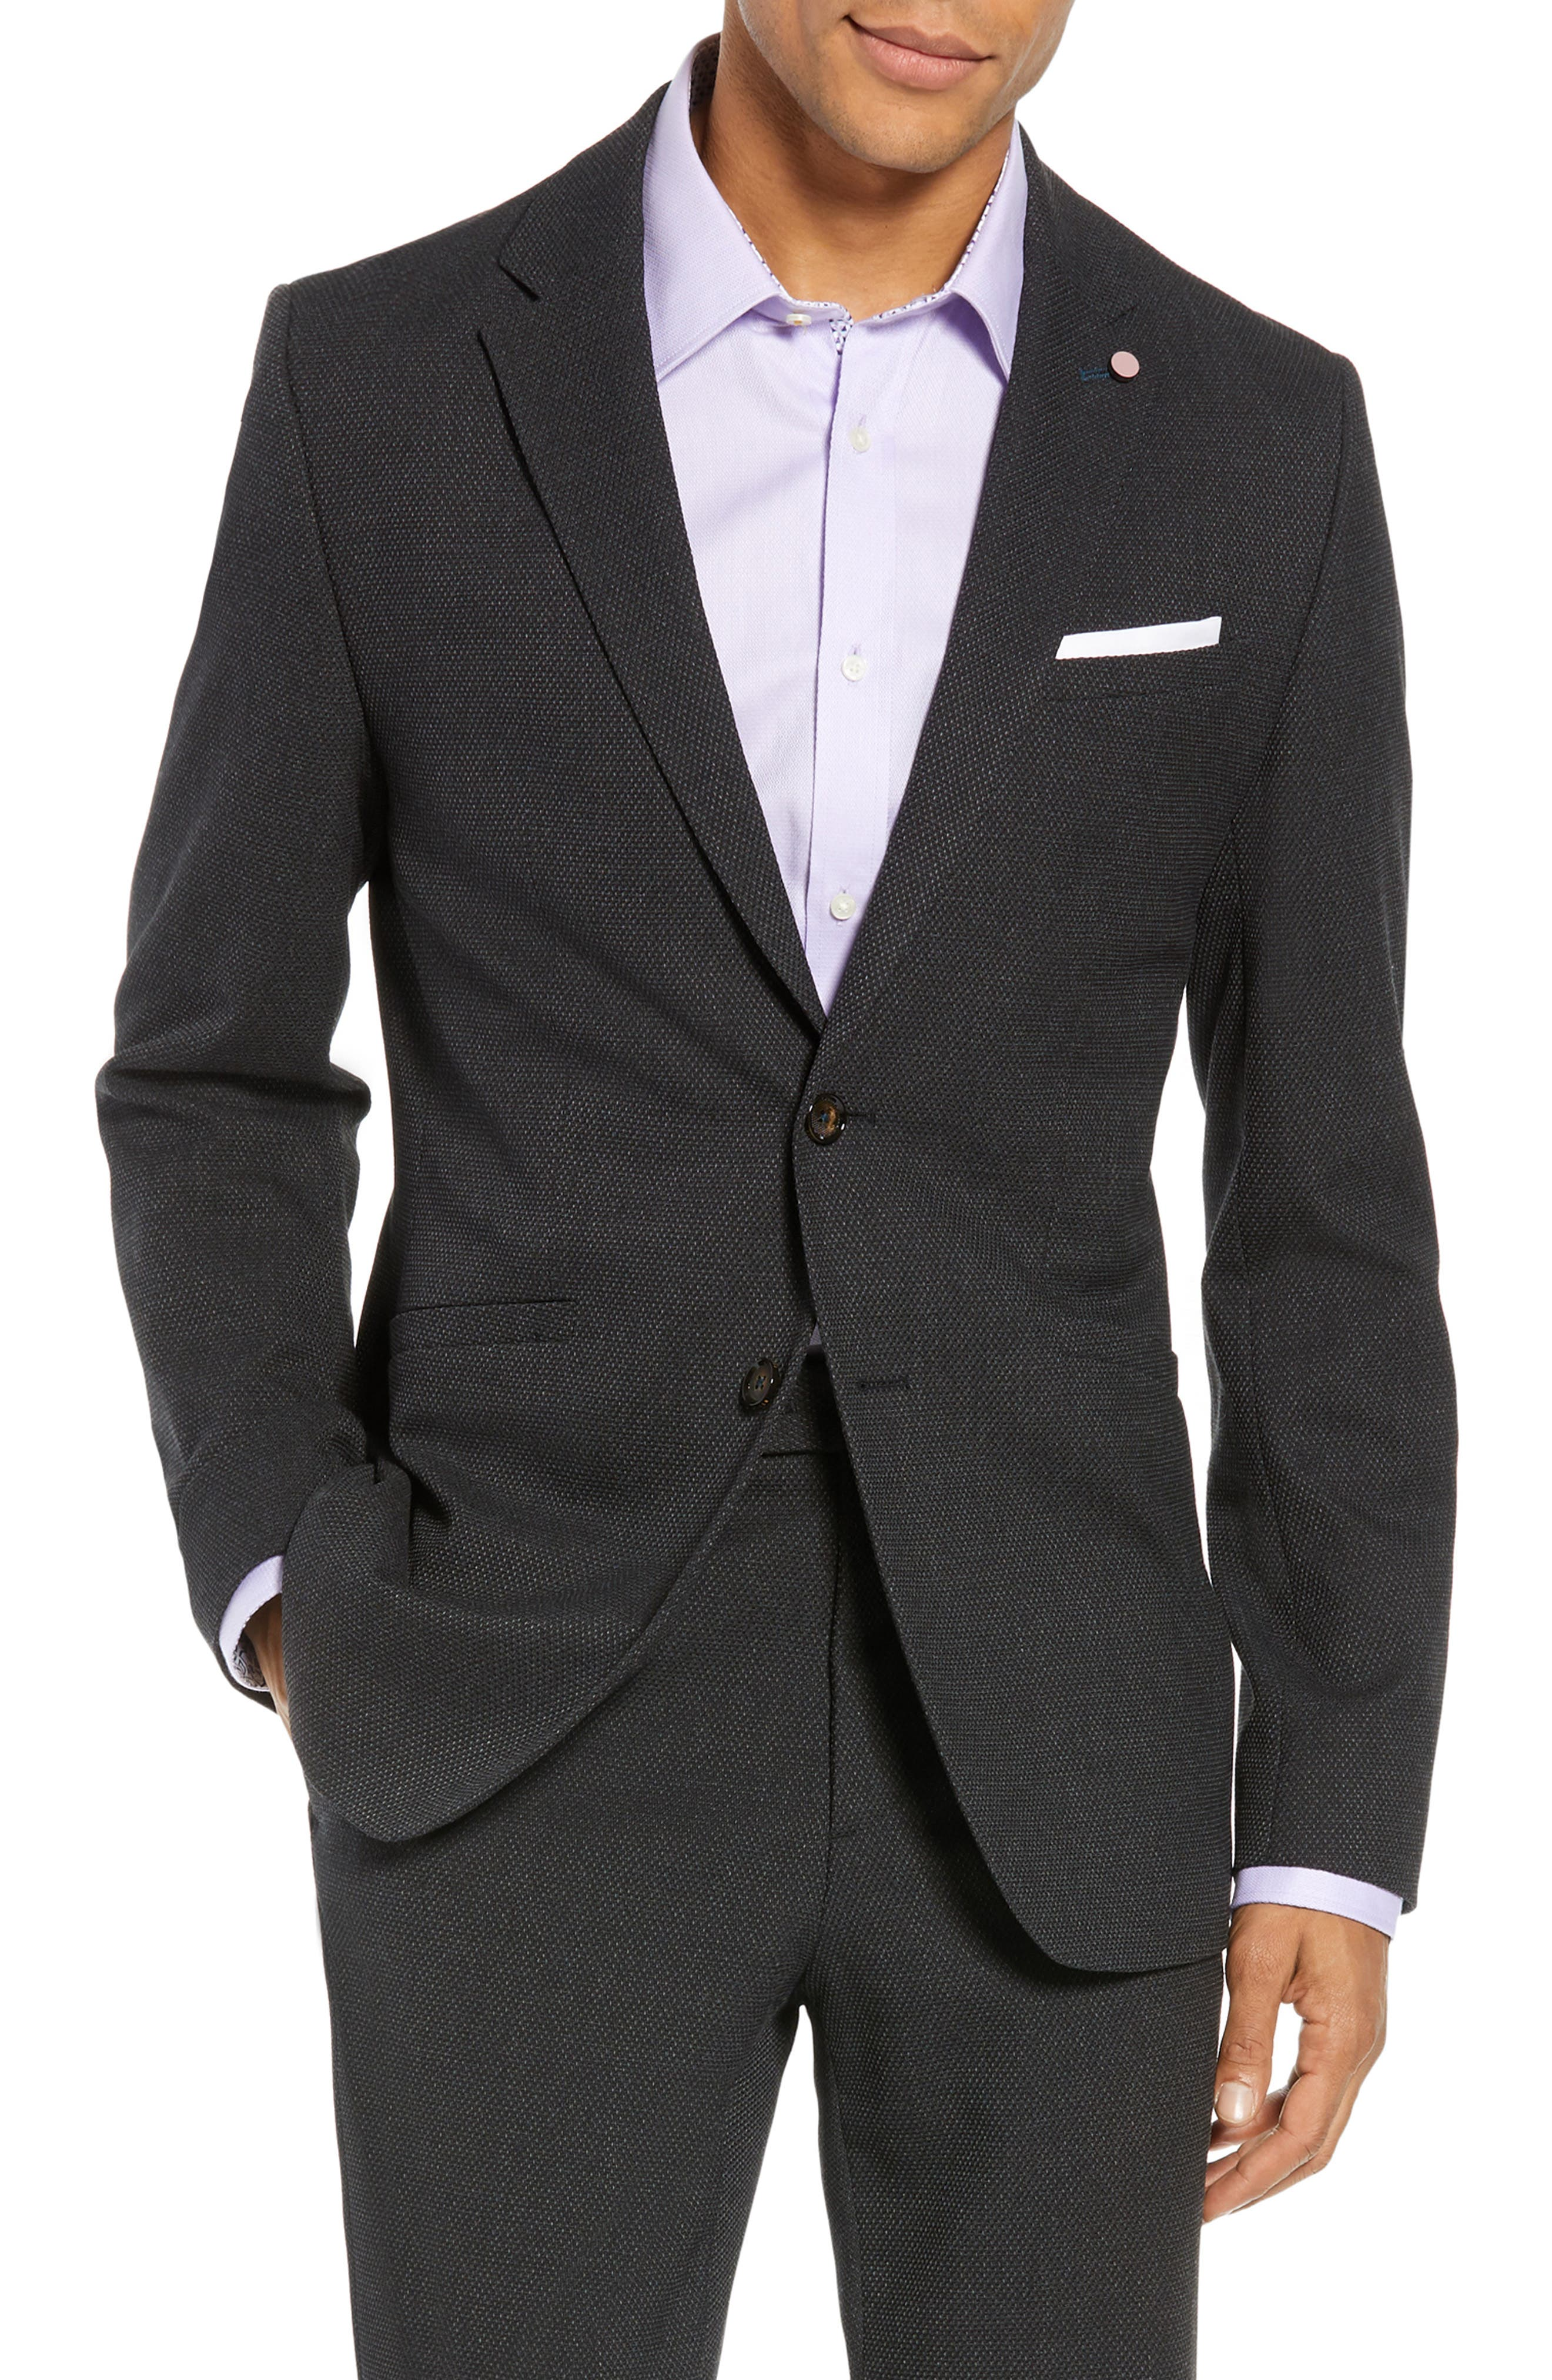 Gorka Slim Fit Suit Jacket,                             Main thumbnail 1, color,                             CHARCOAL